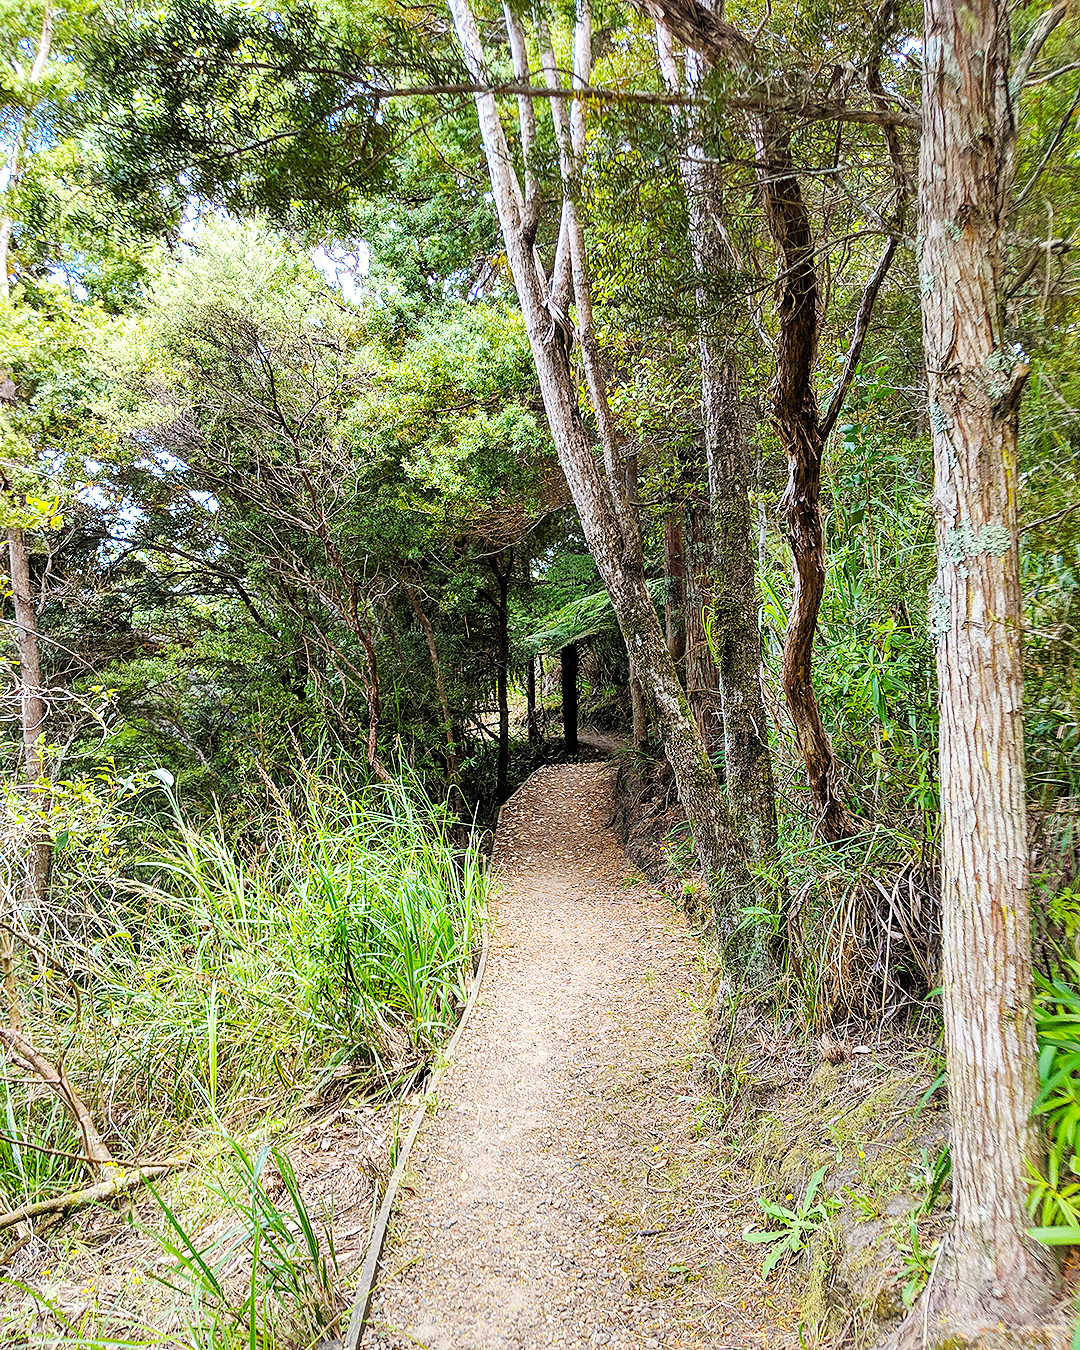 A track through the bush on Waiheke Island.